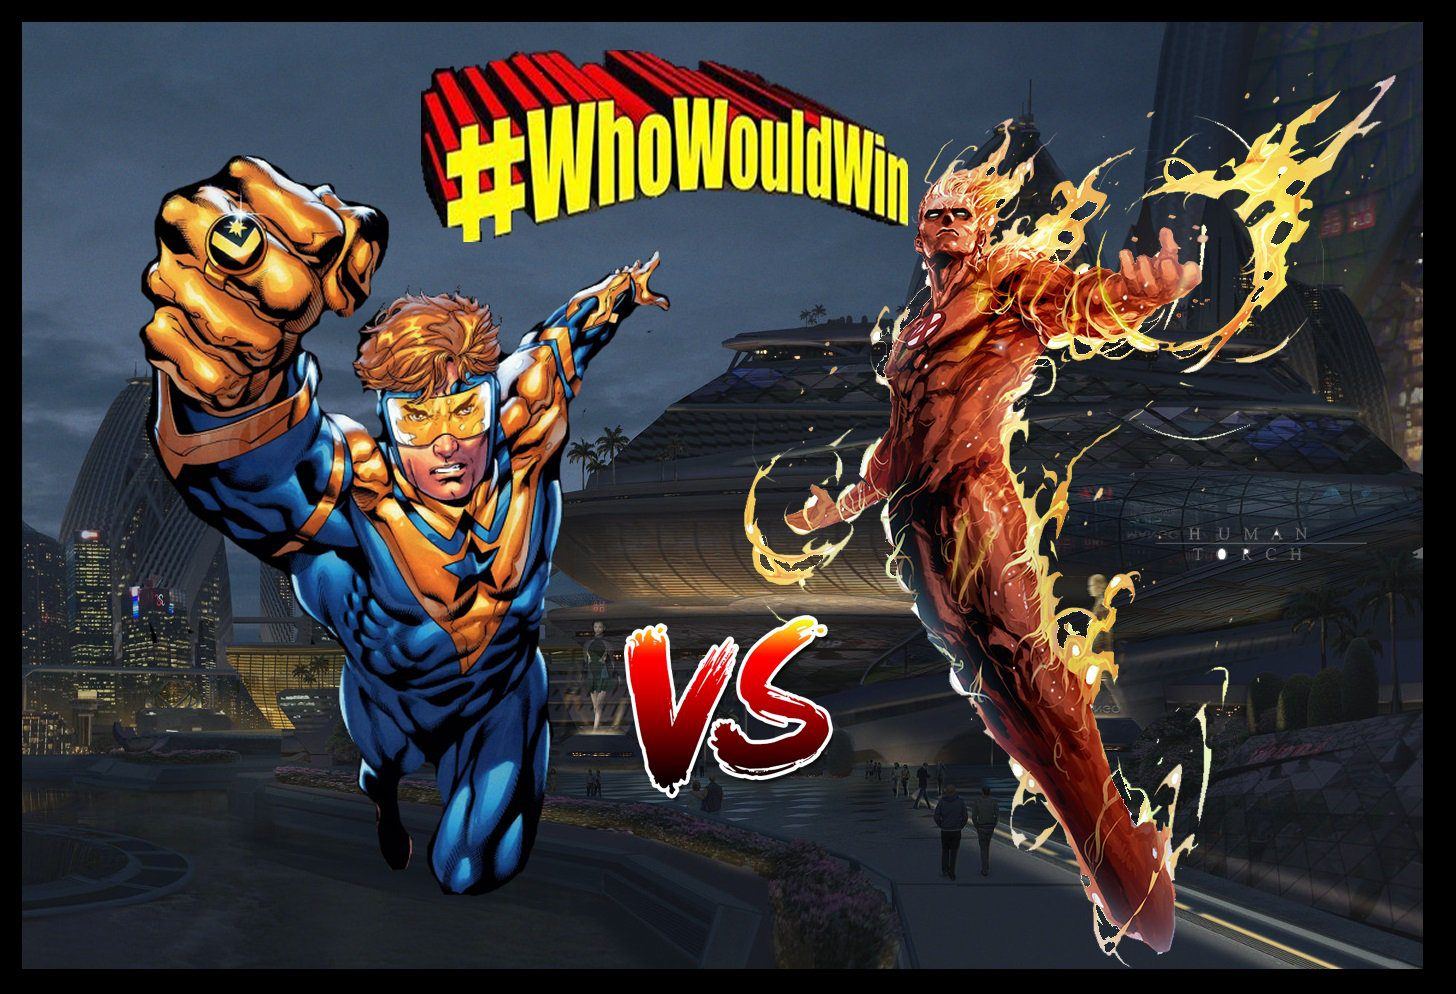 #WhoWouldWin: Human Torch vs. Booster Gold